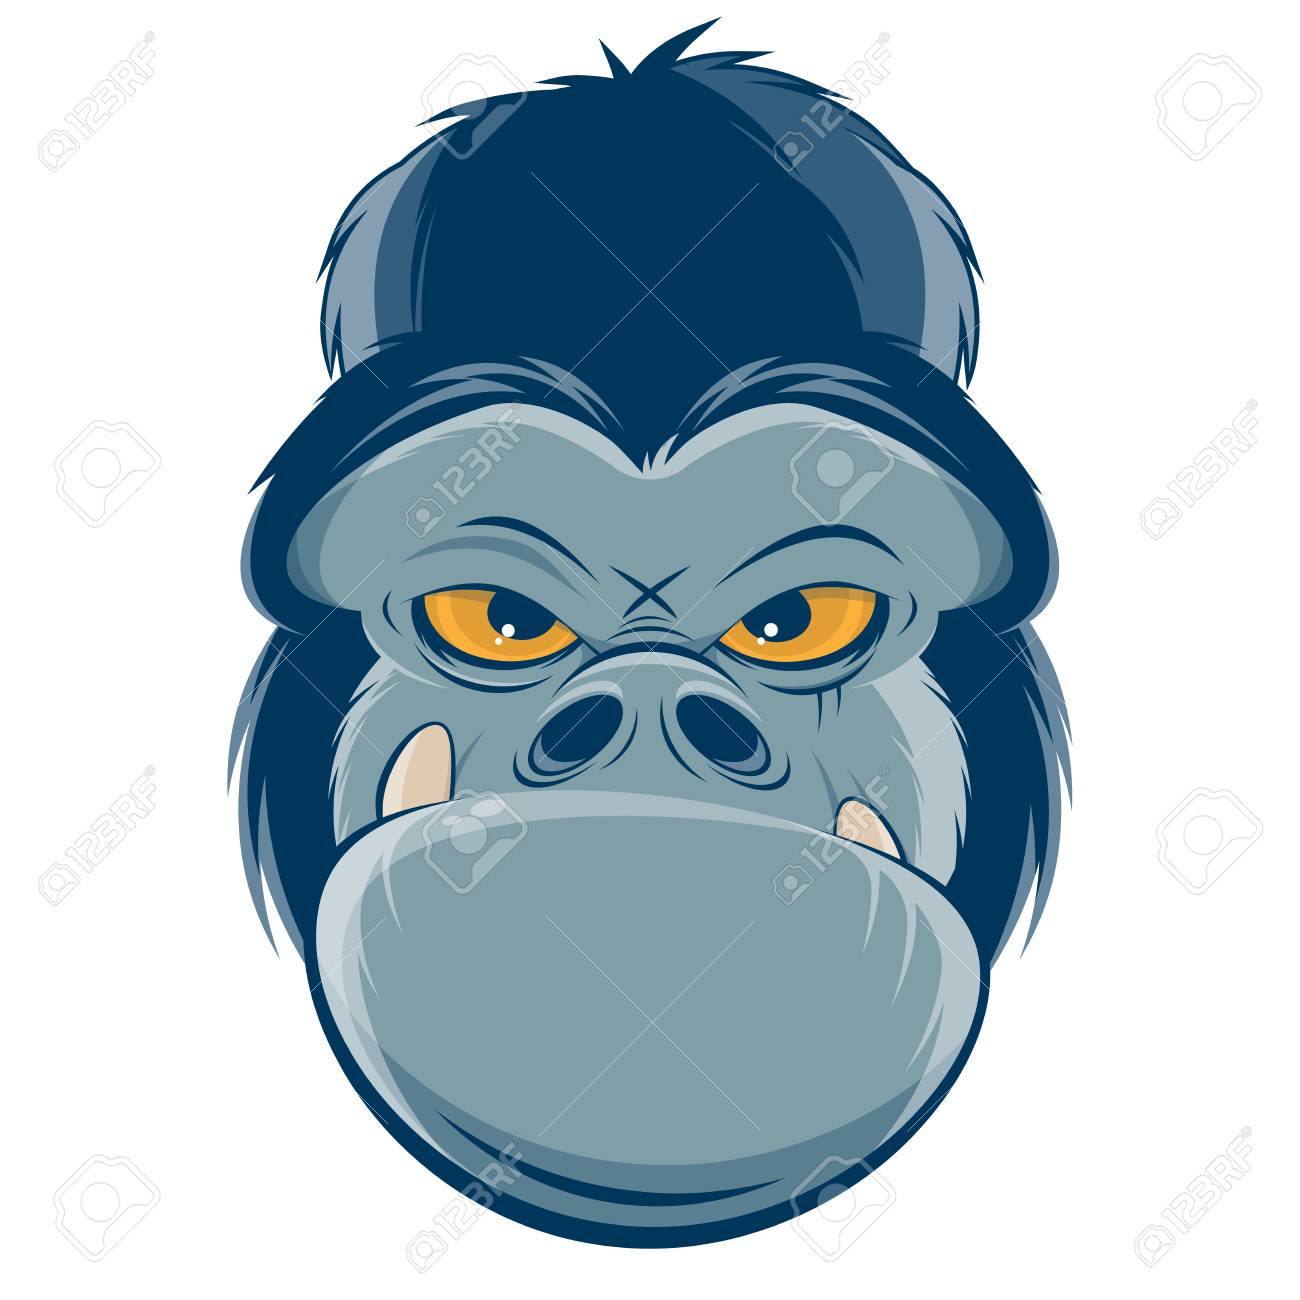 angry gorilla head clipart.